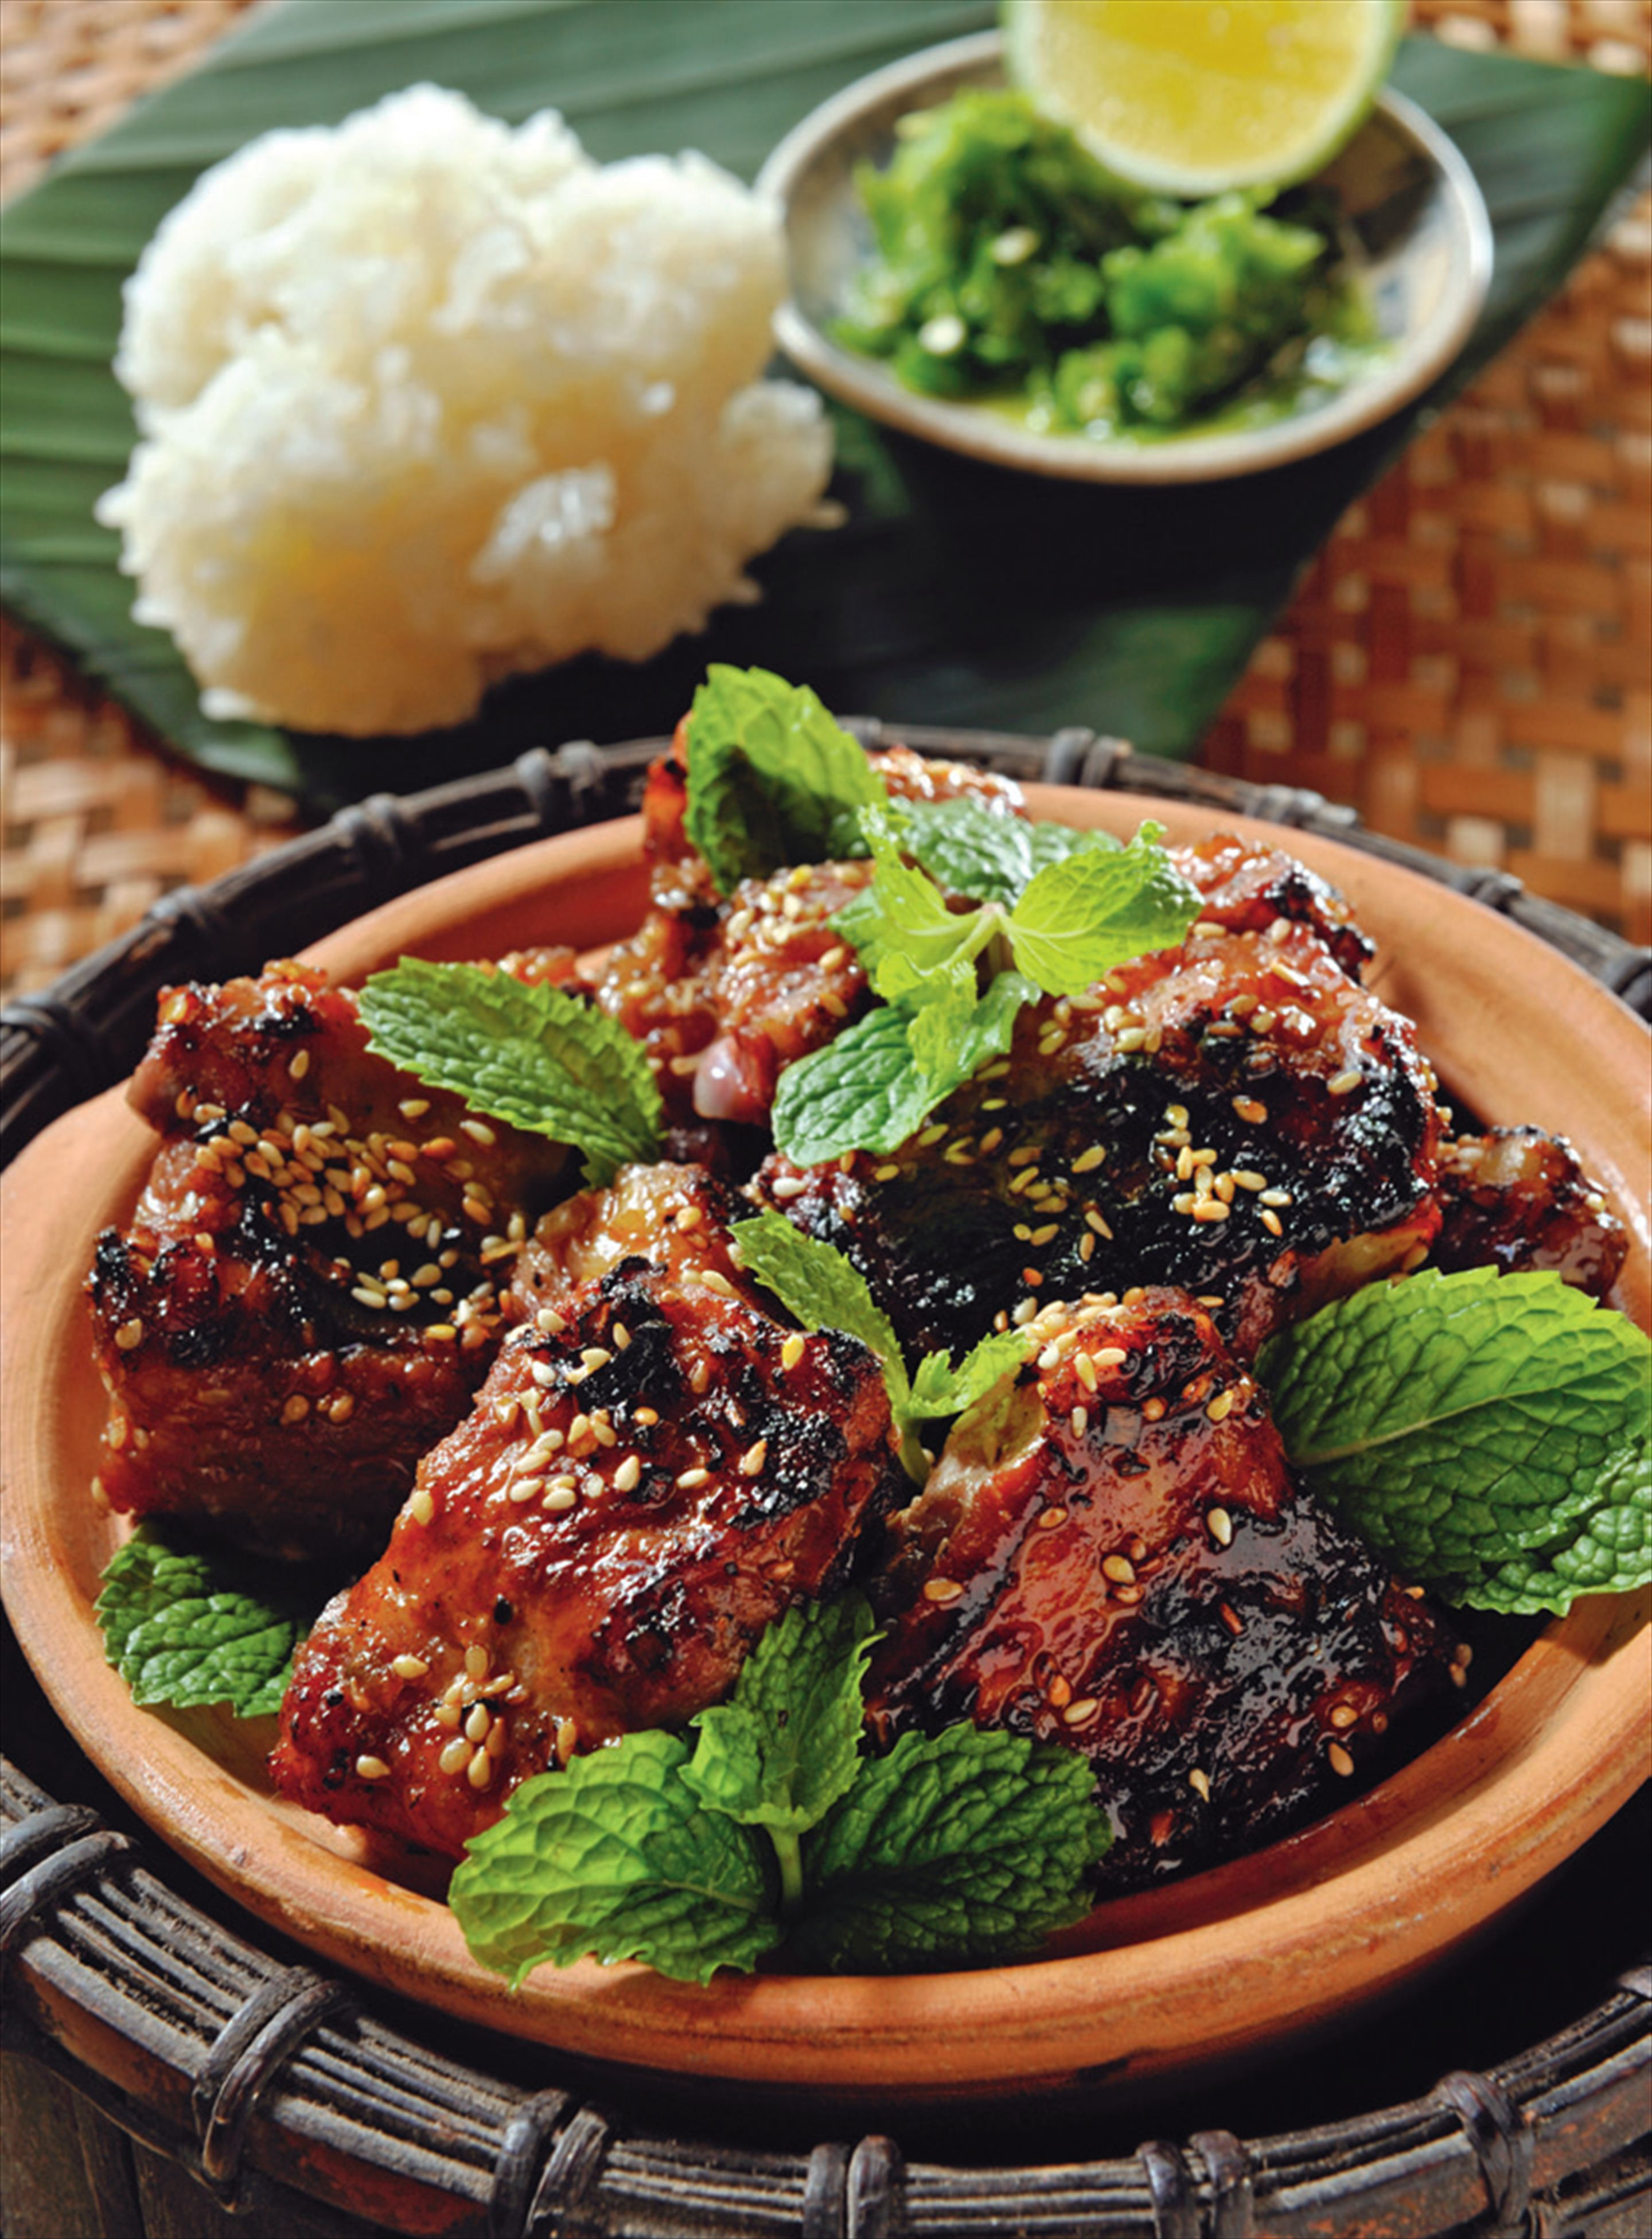 Barbecued pork ribs with sesame seeds and green chilli dipping salt